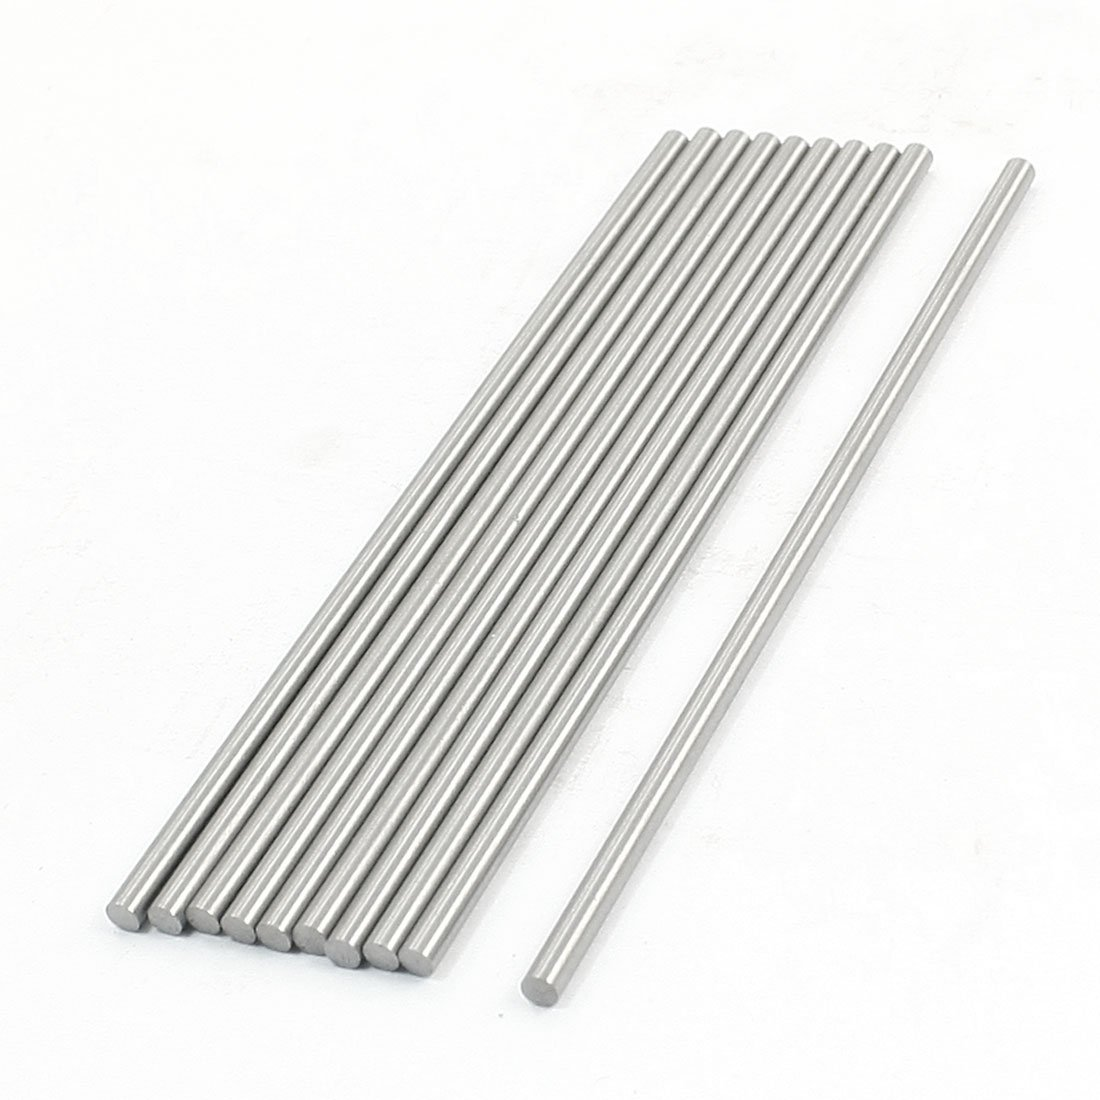 2.8mm x 100mm Graving Tool Round Turning Lathe Bars Silver Tone 10 Pcs Sourcingmap a14021800ux0789